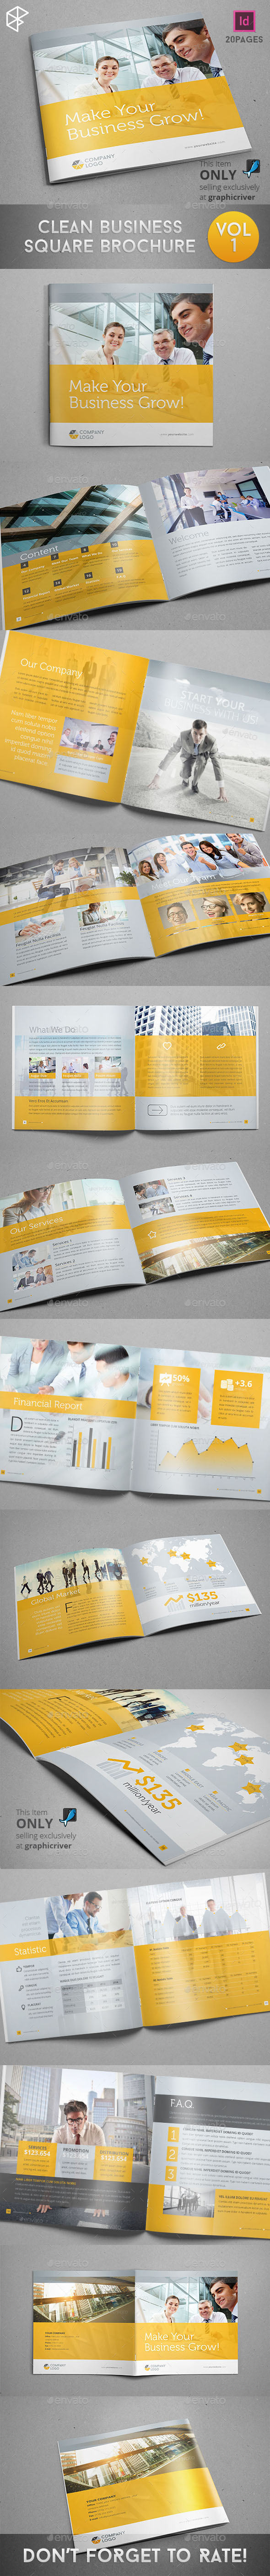 GraphicRiver Clean Business Square Brochure 9844214